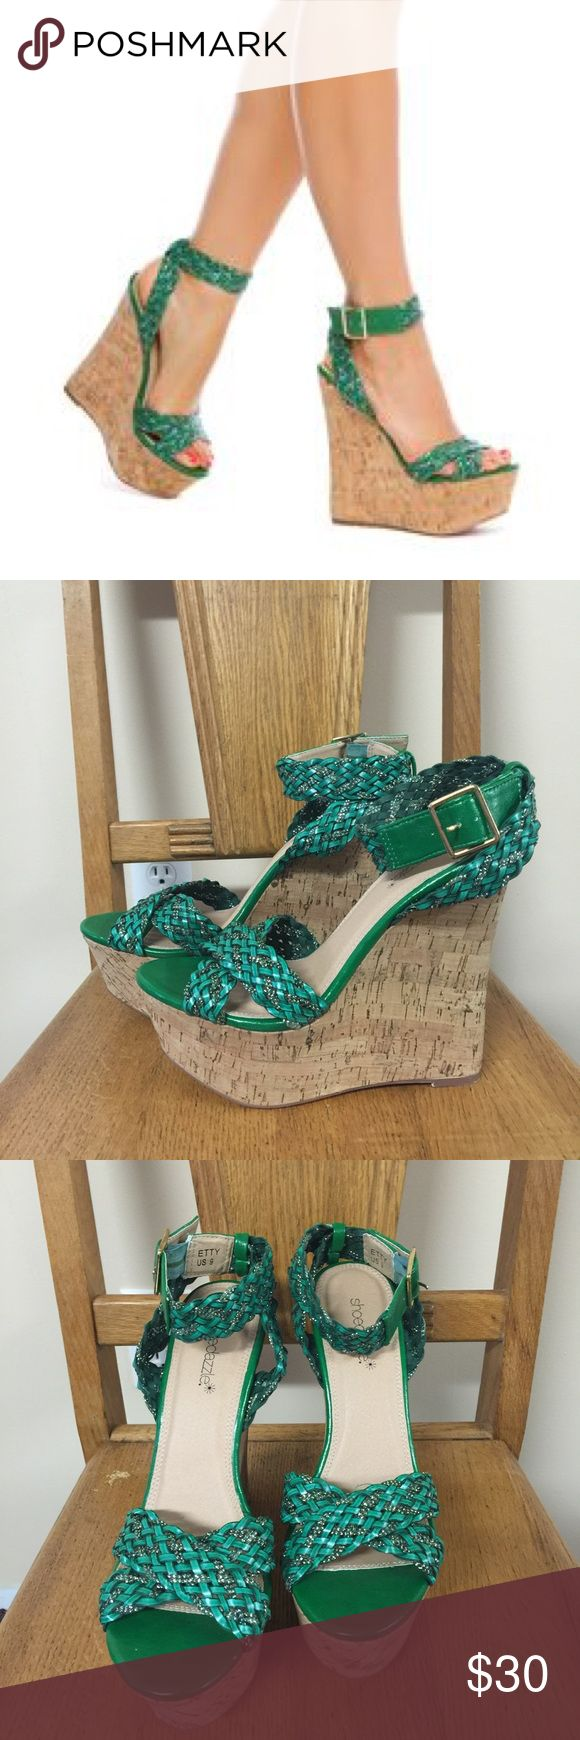 Shoe Dazzle Etty Green Wedge Shoes Sandals Brand new without tags/box green colored wedges from Shoedazzle in the Etty style. The cover photo is a stock photo and the the second and third photos are the actual shoes. Please ask if you have any questions, need any measurements or more pictures. No trades. Shoe Dazzle Shoes Wedges